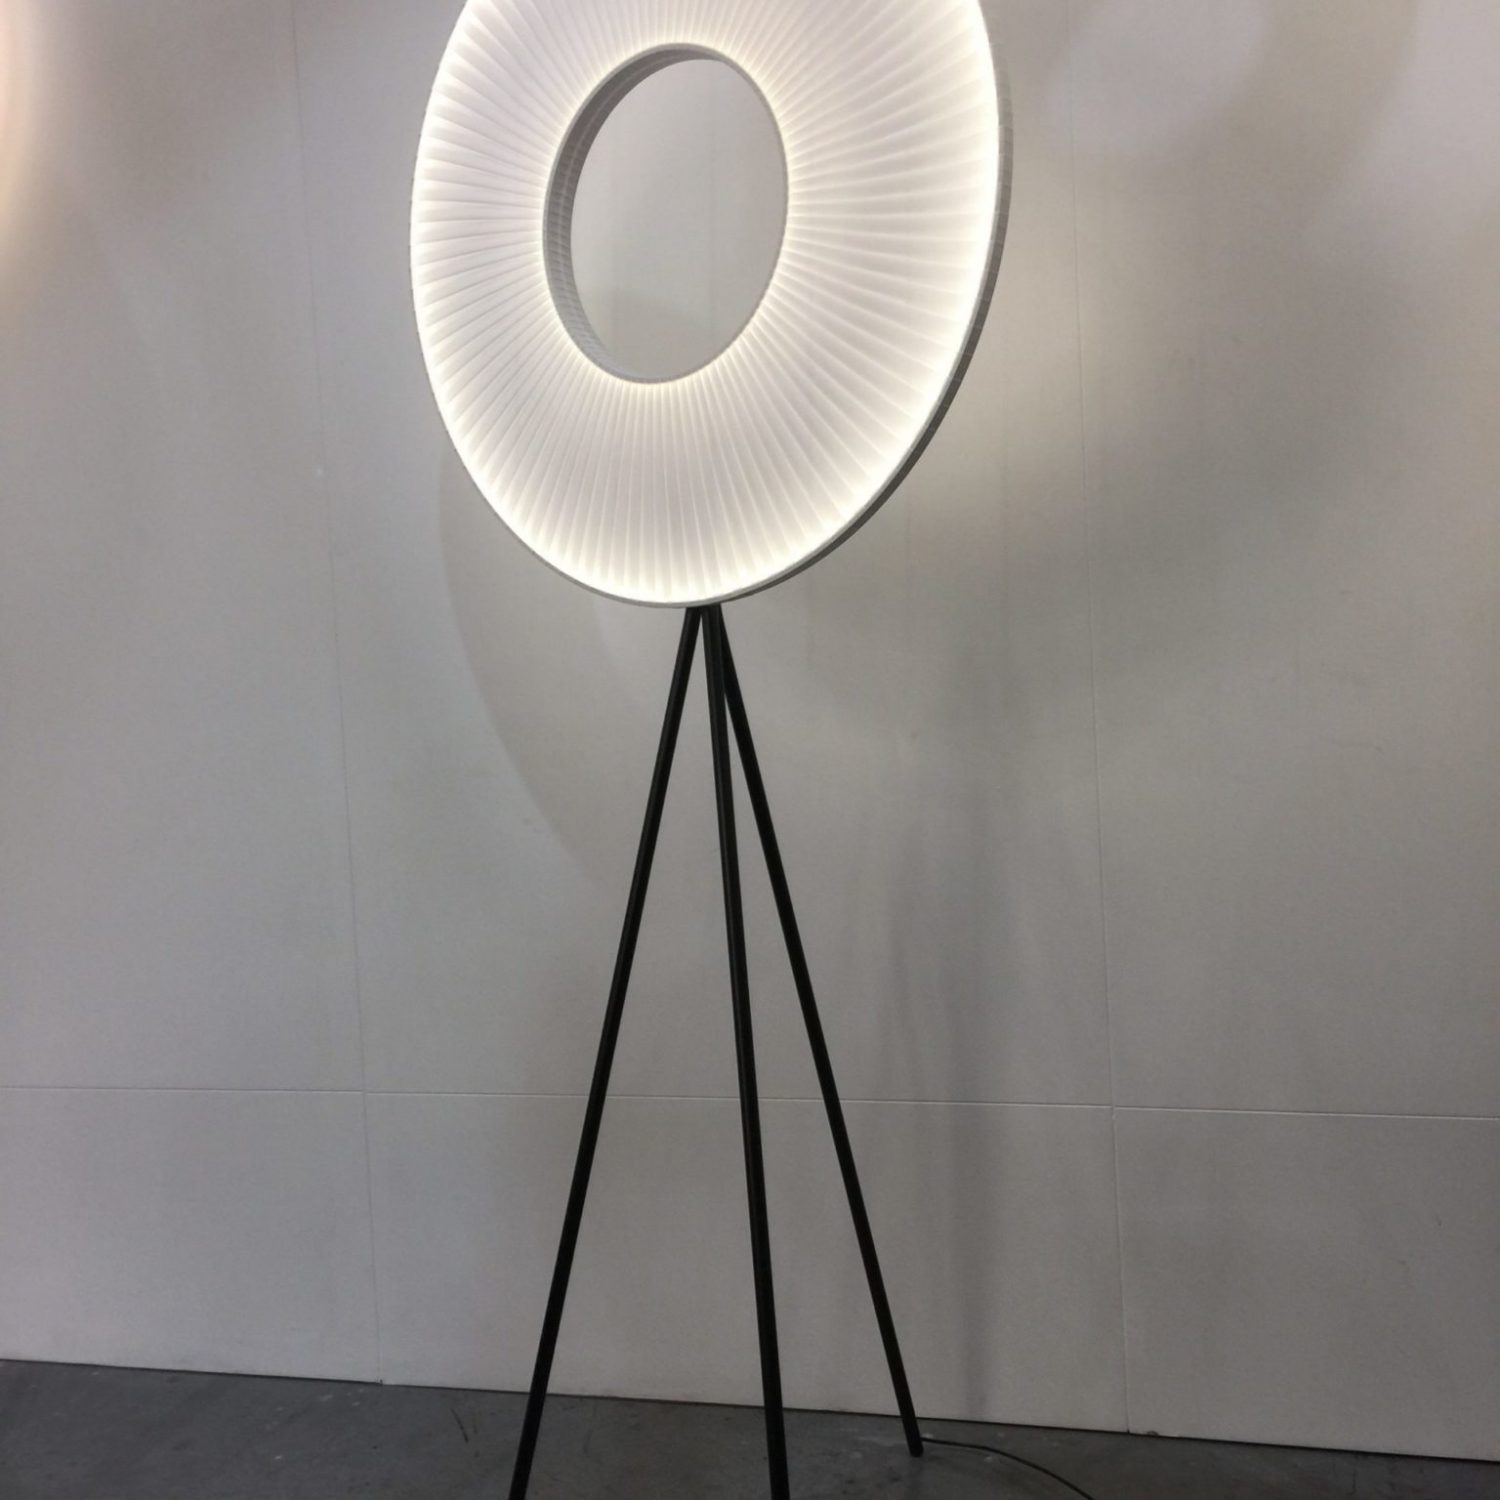 Lampadaire H590 by Fabrice BERRUX